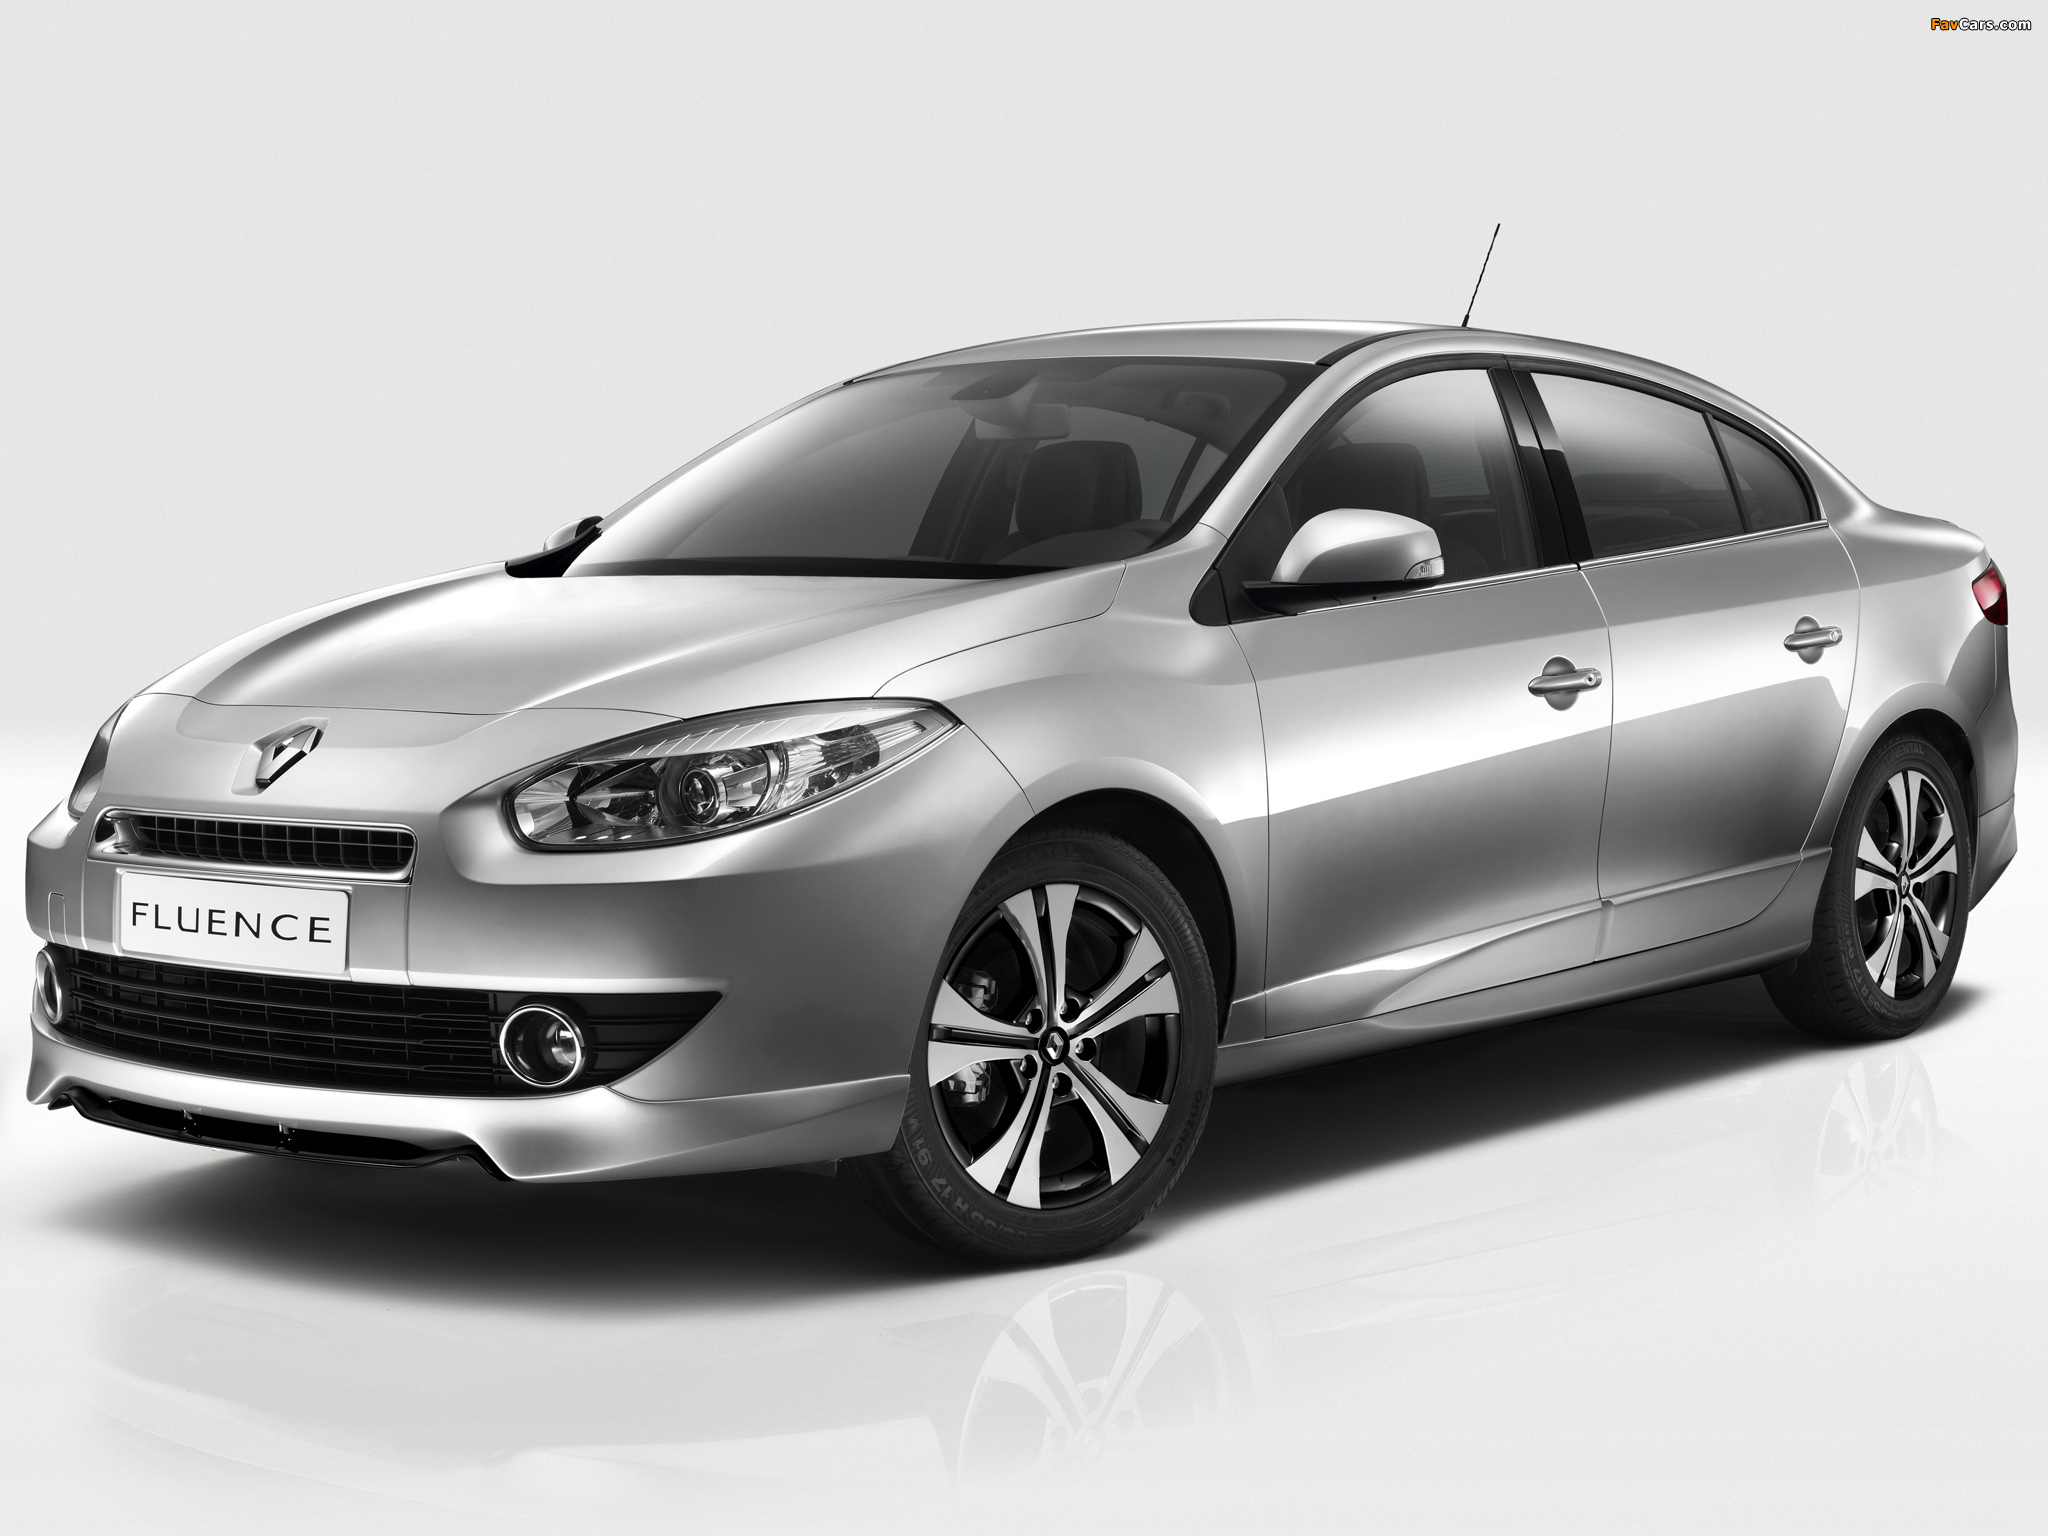 Renault Fluence Black Edition 2012 pictures (2048 x 1536)